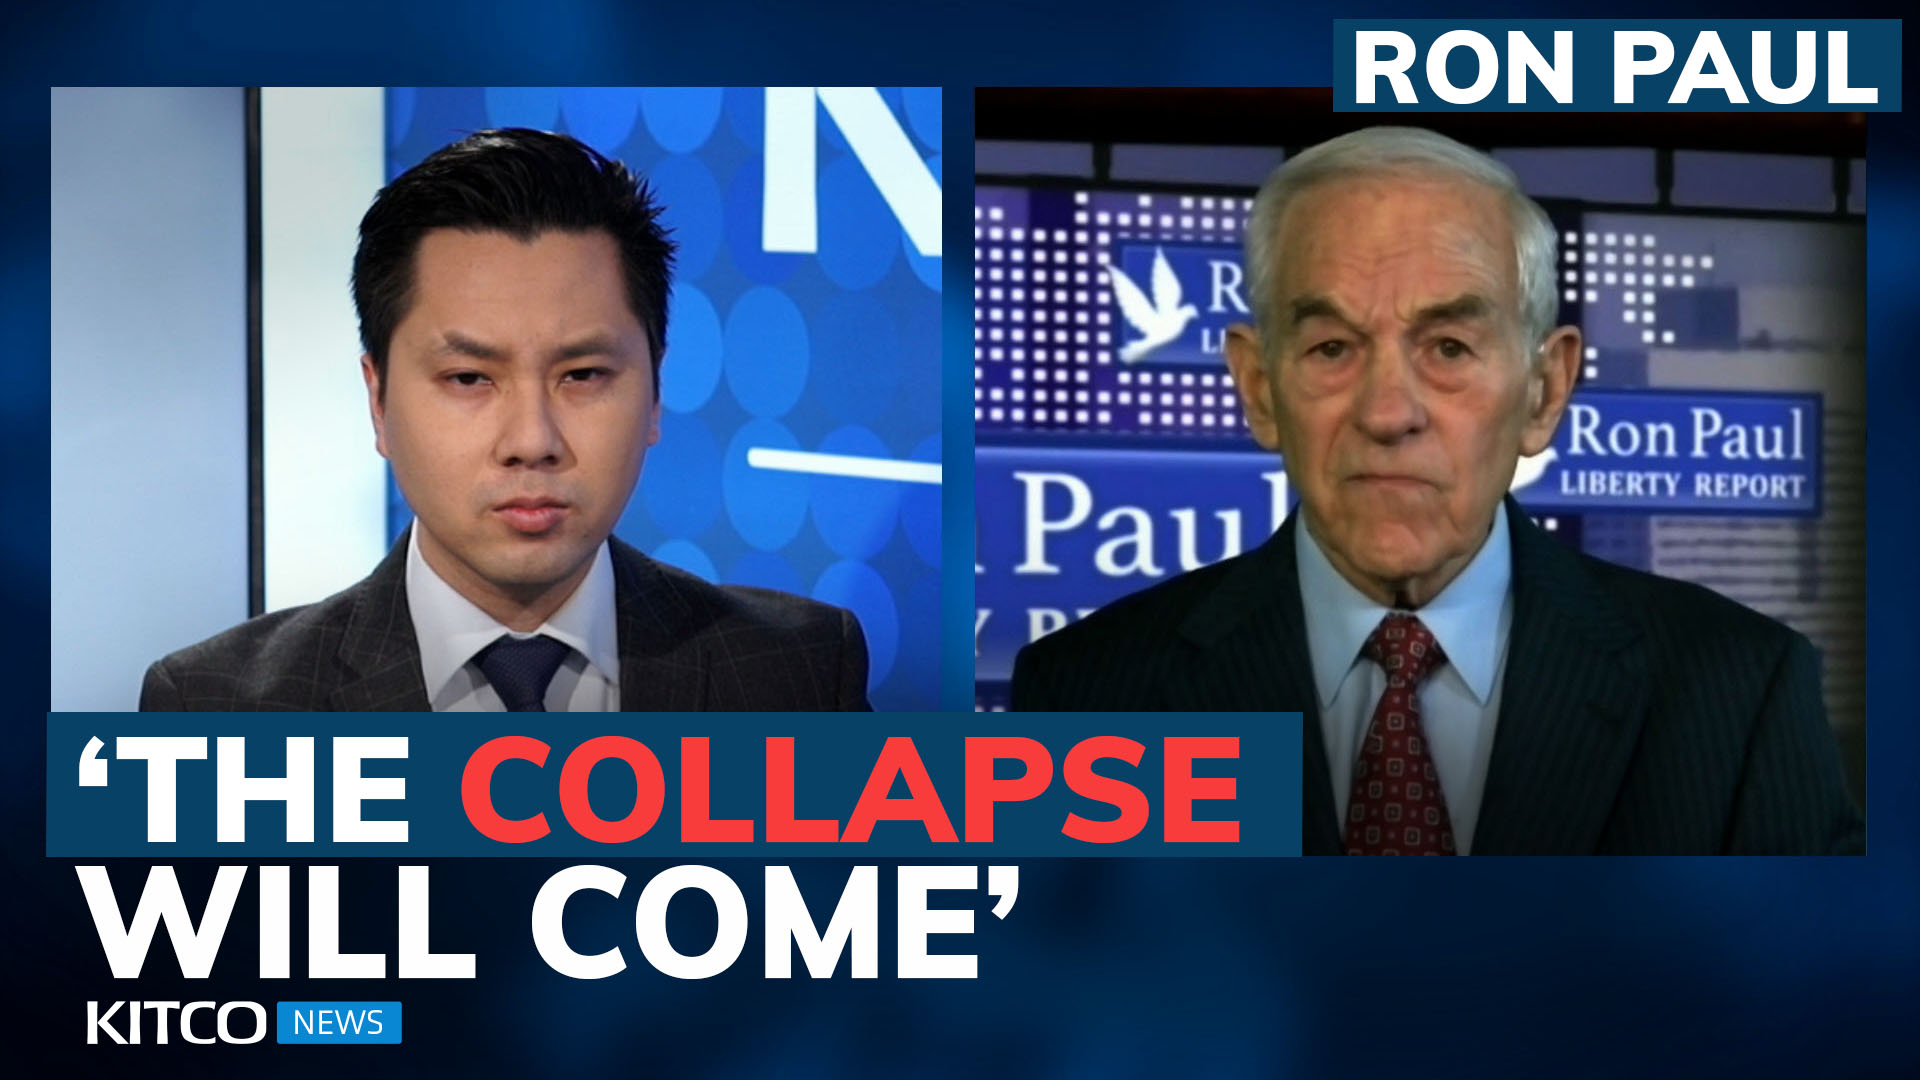 Ron Paul on the next economic collapse, America's future, and universal basic income